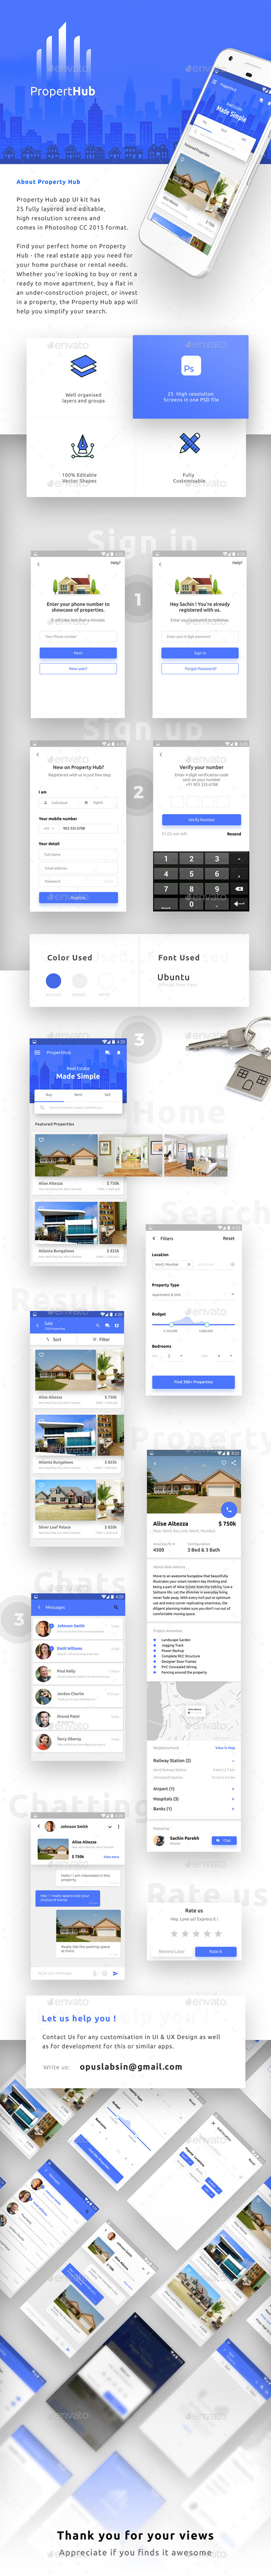 GraphicRiver Real Estate App UI for Android & iOS Property Hub 20854770